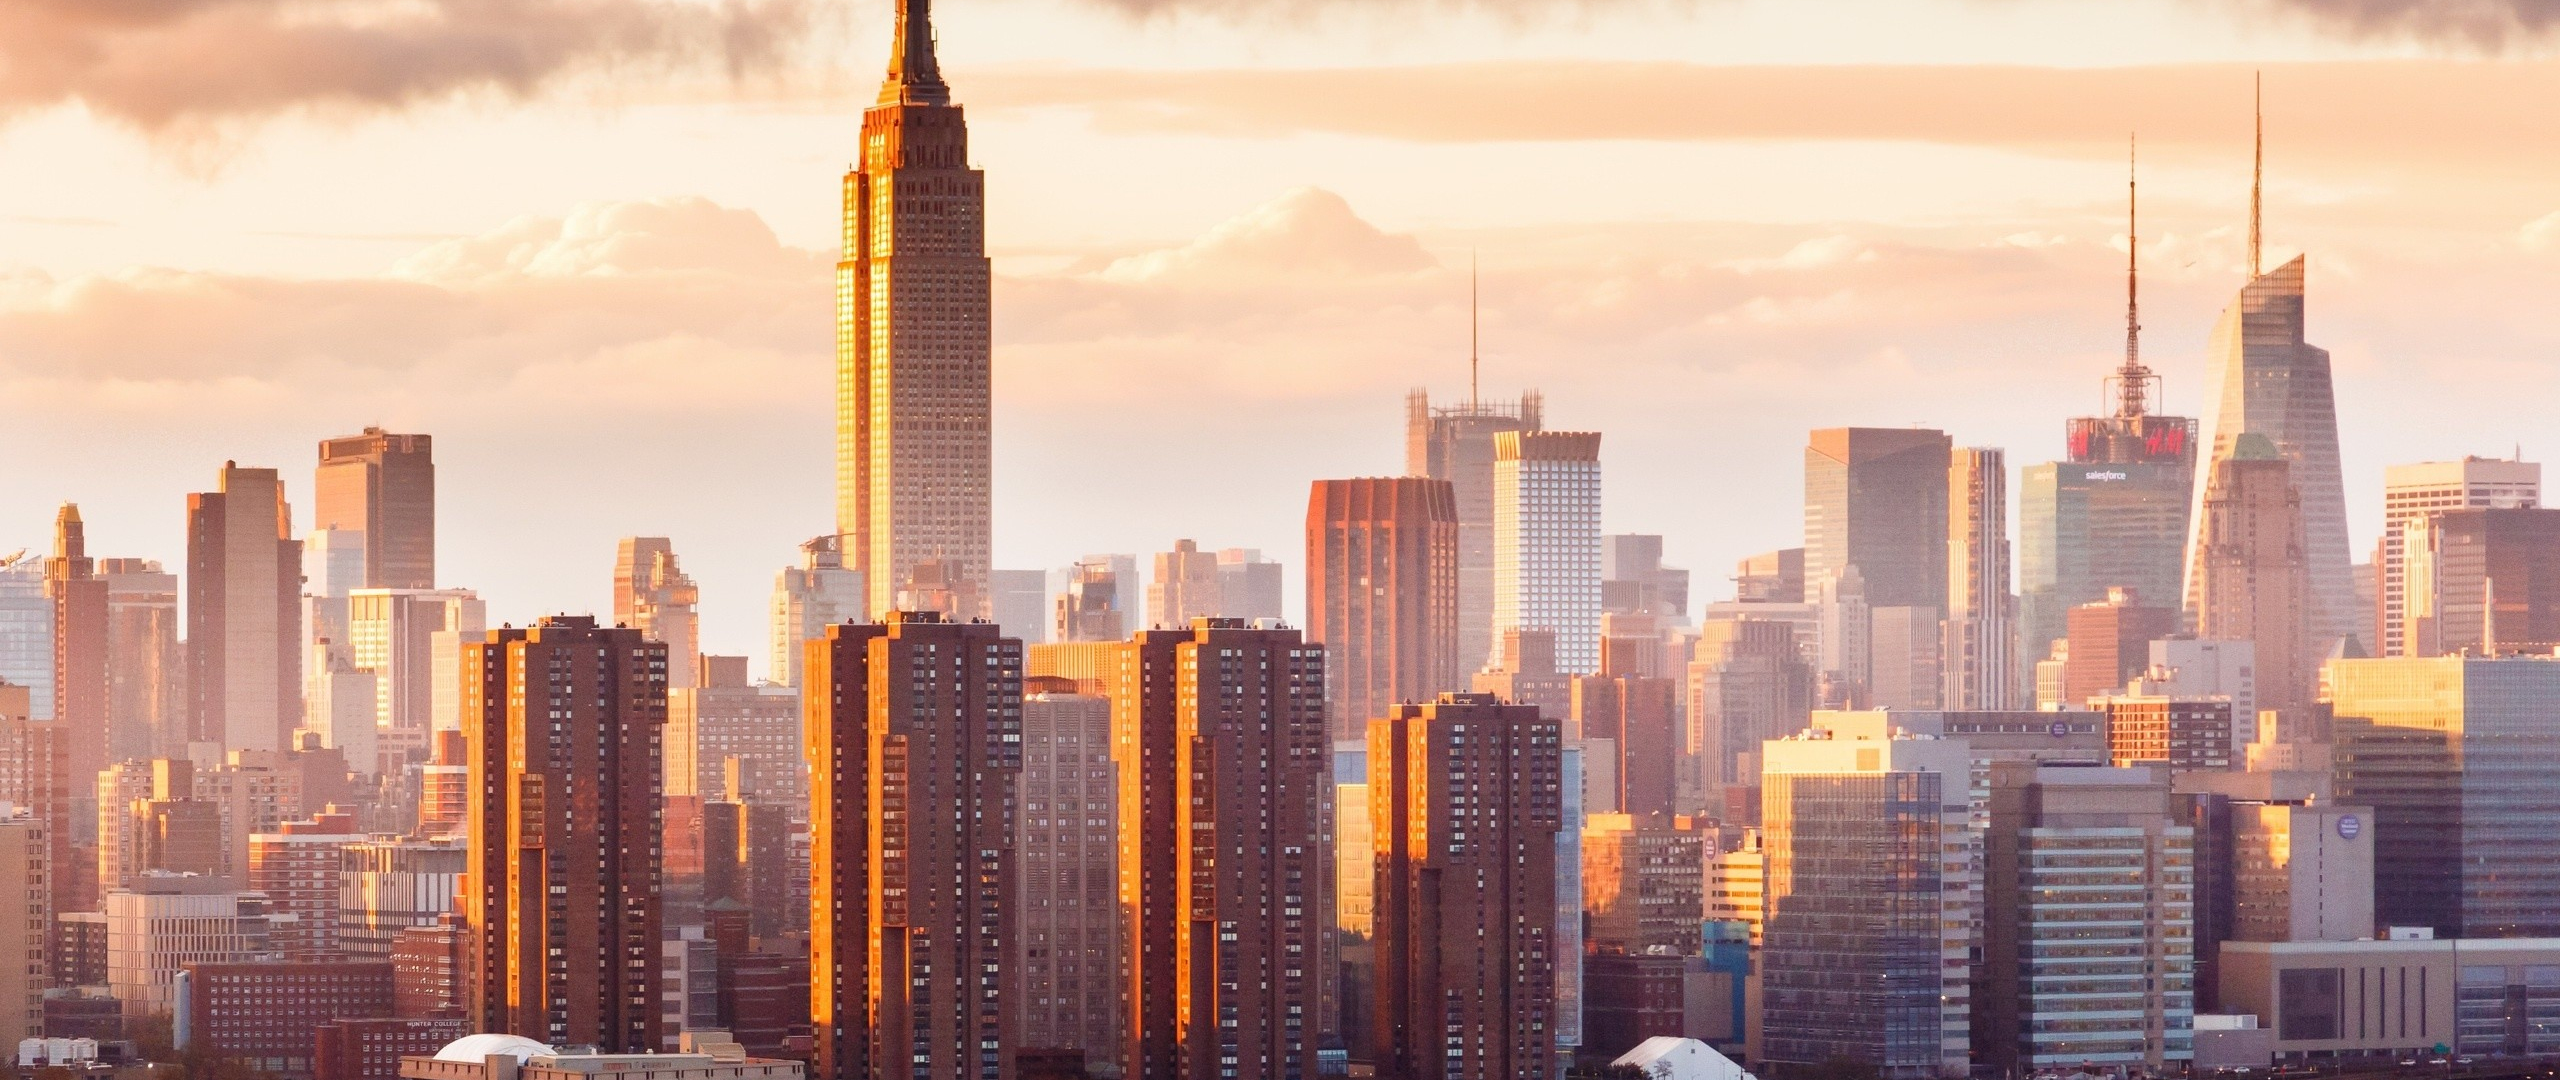 Desktop Wallpaper New York City Sunny Day Buildings Hd Image Picture Background 1e3d72